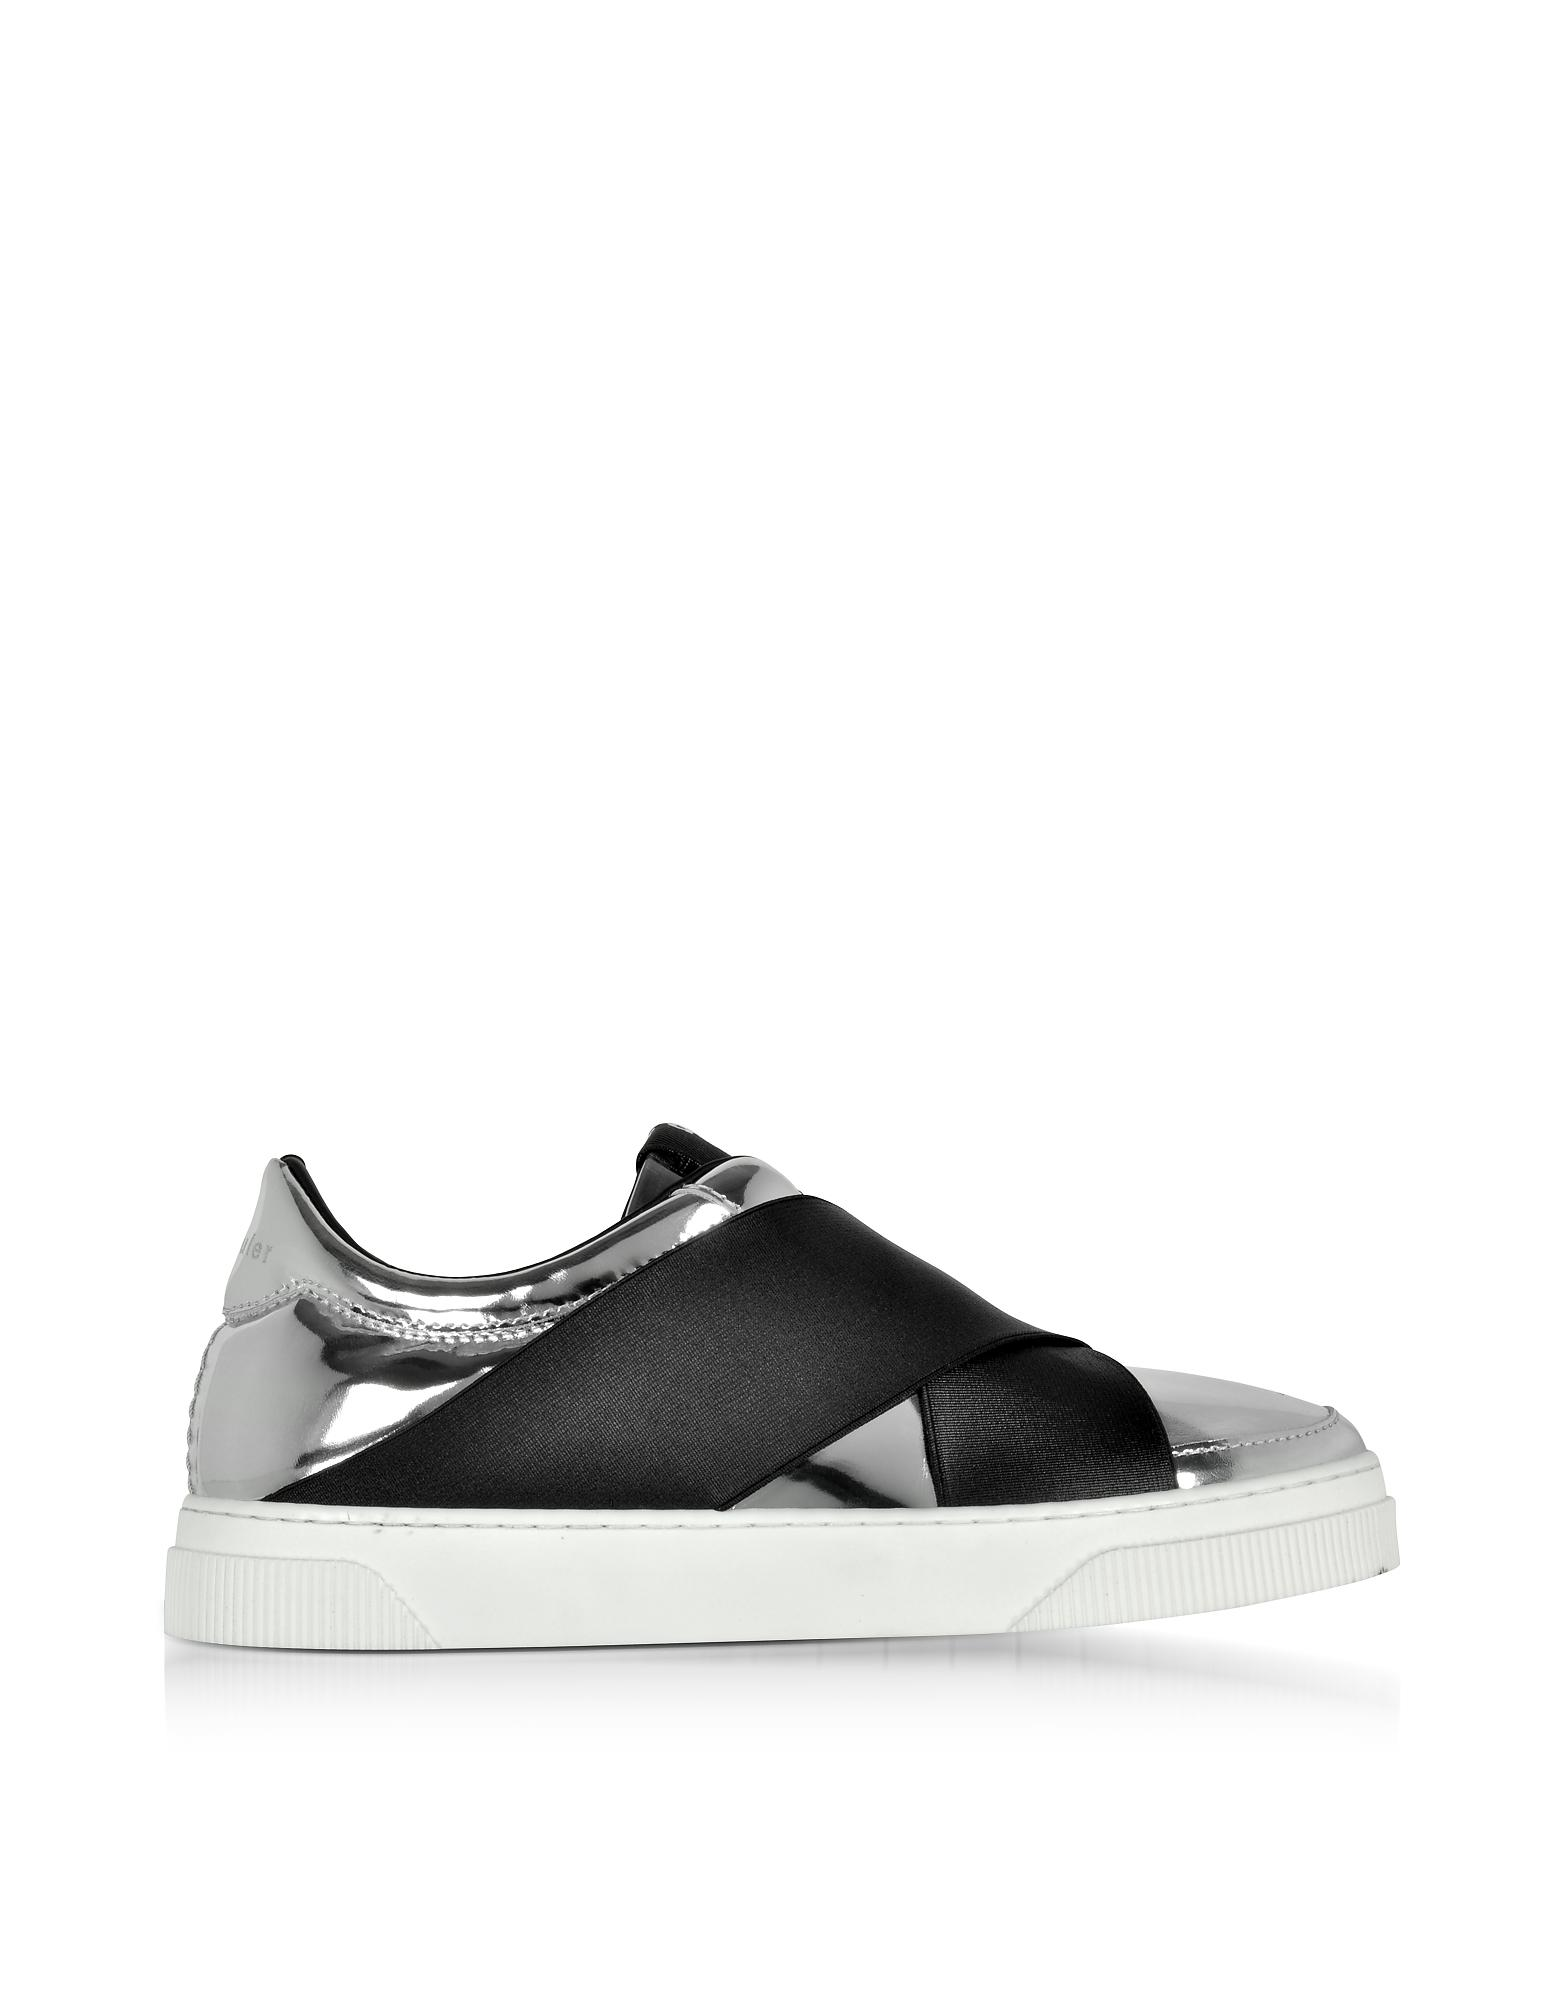 Proenza Schouler Leather Slip-On Sneakers R3tNb